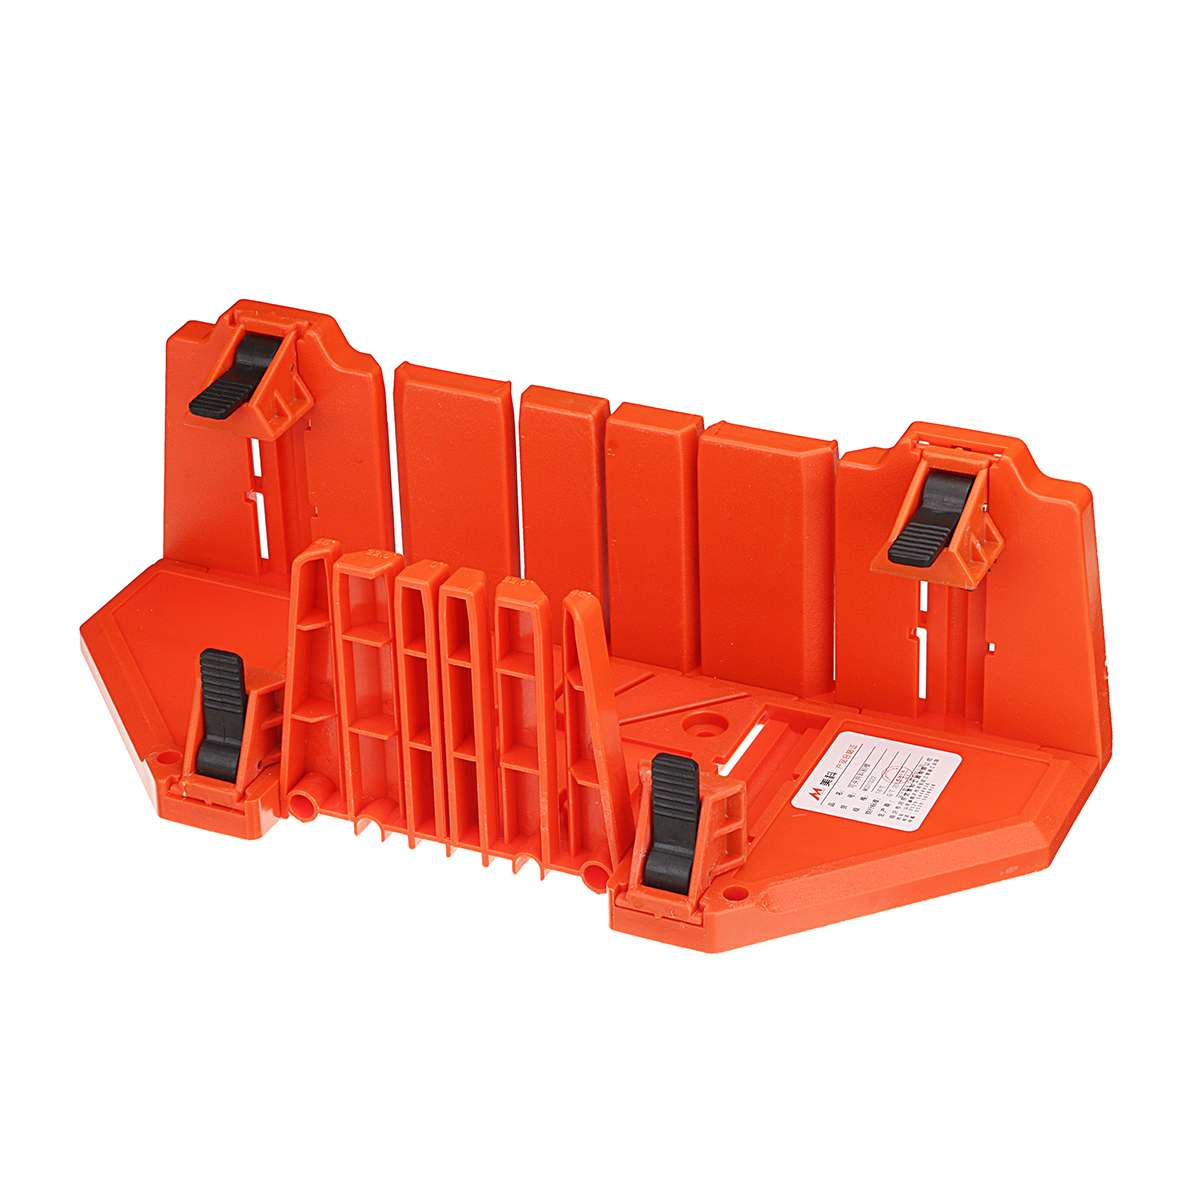 14 Plastic Mitre Box Saw Cabinet Case Multifunctional Woodworking Oblique Angle Hand Clip Cutting Tools Carpentry Accessories14 Plastic Mitre Box Saw Cabinet Case Multifunctional Woodworking Oblique Angle Hand Clip Cutting Tools Carpentry Accessories